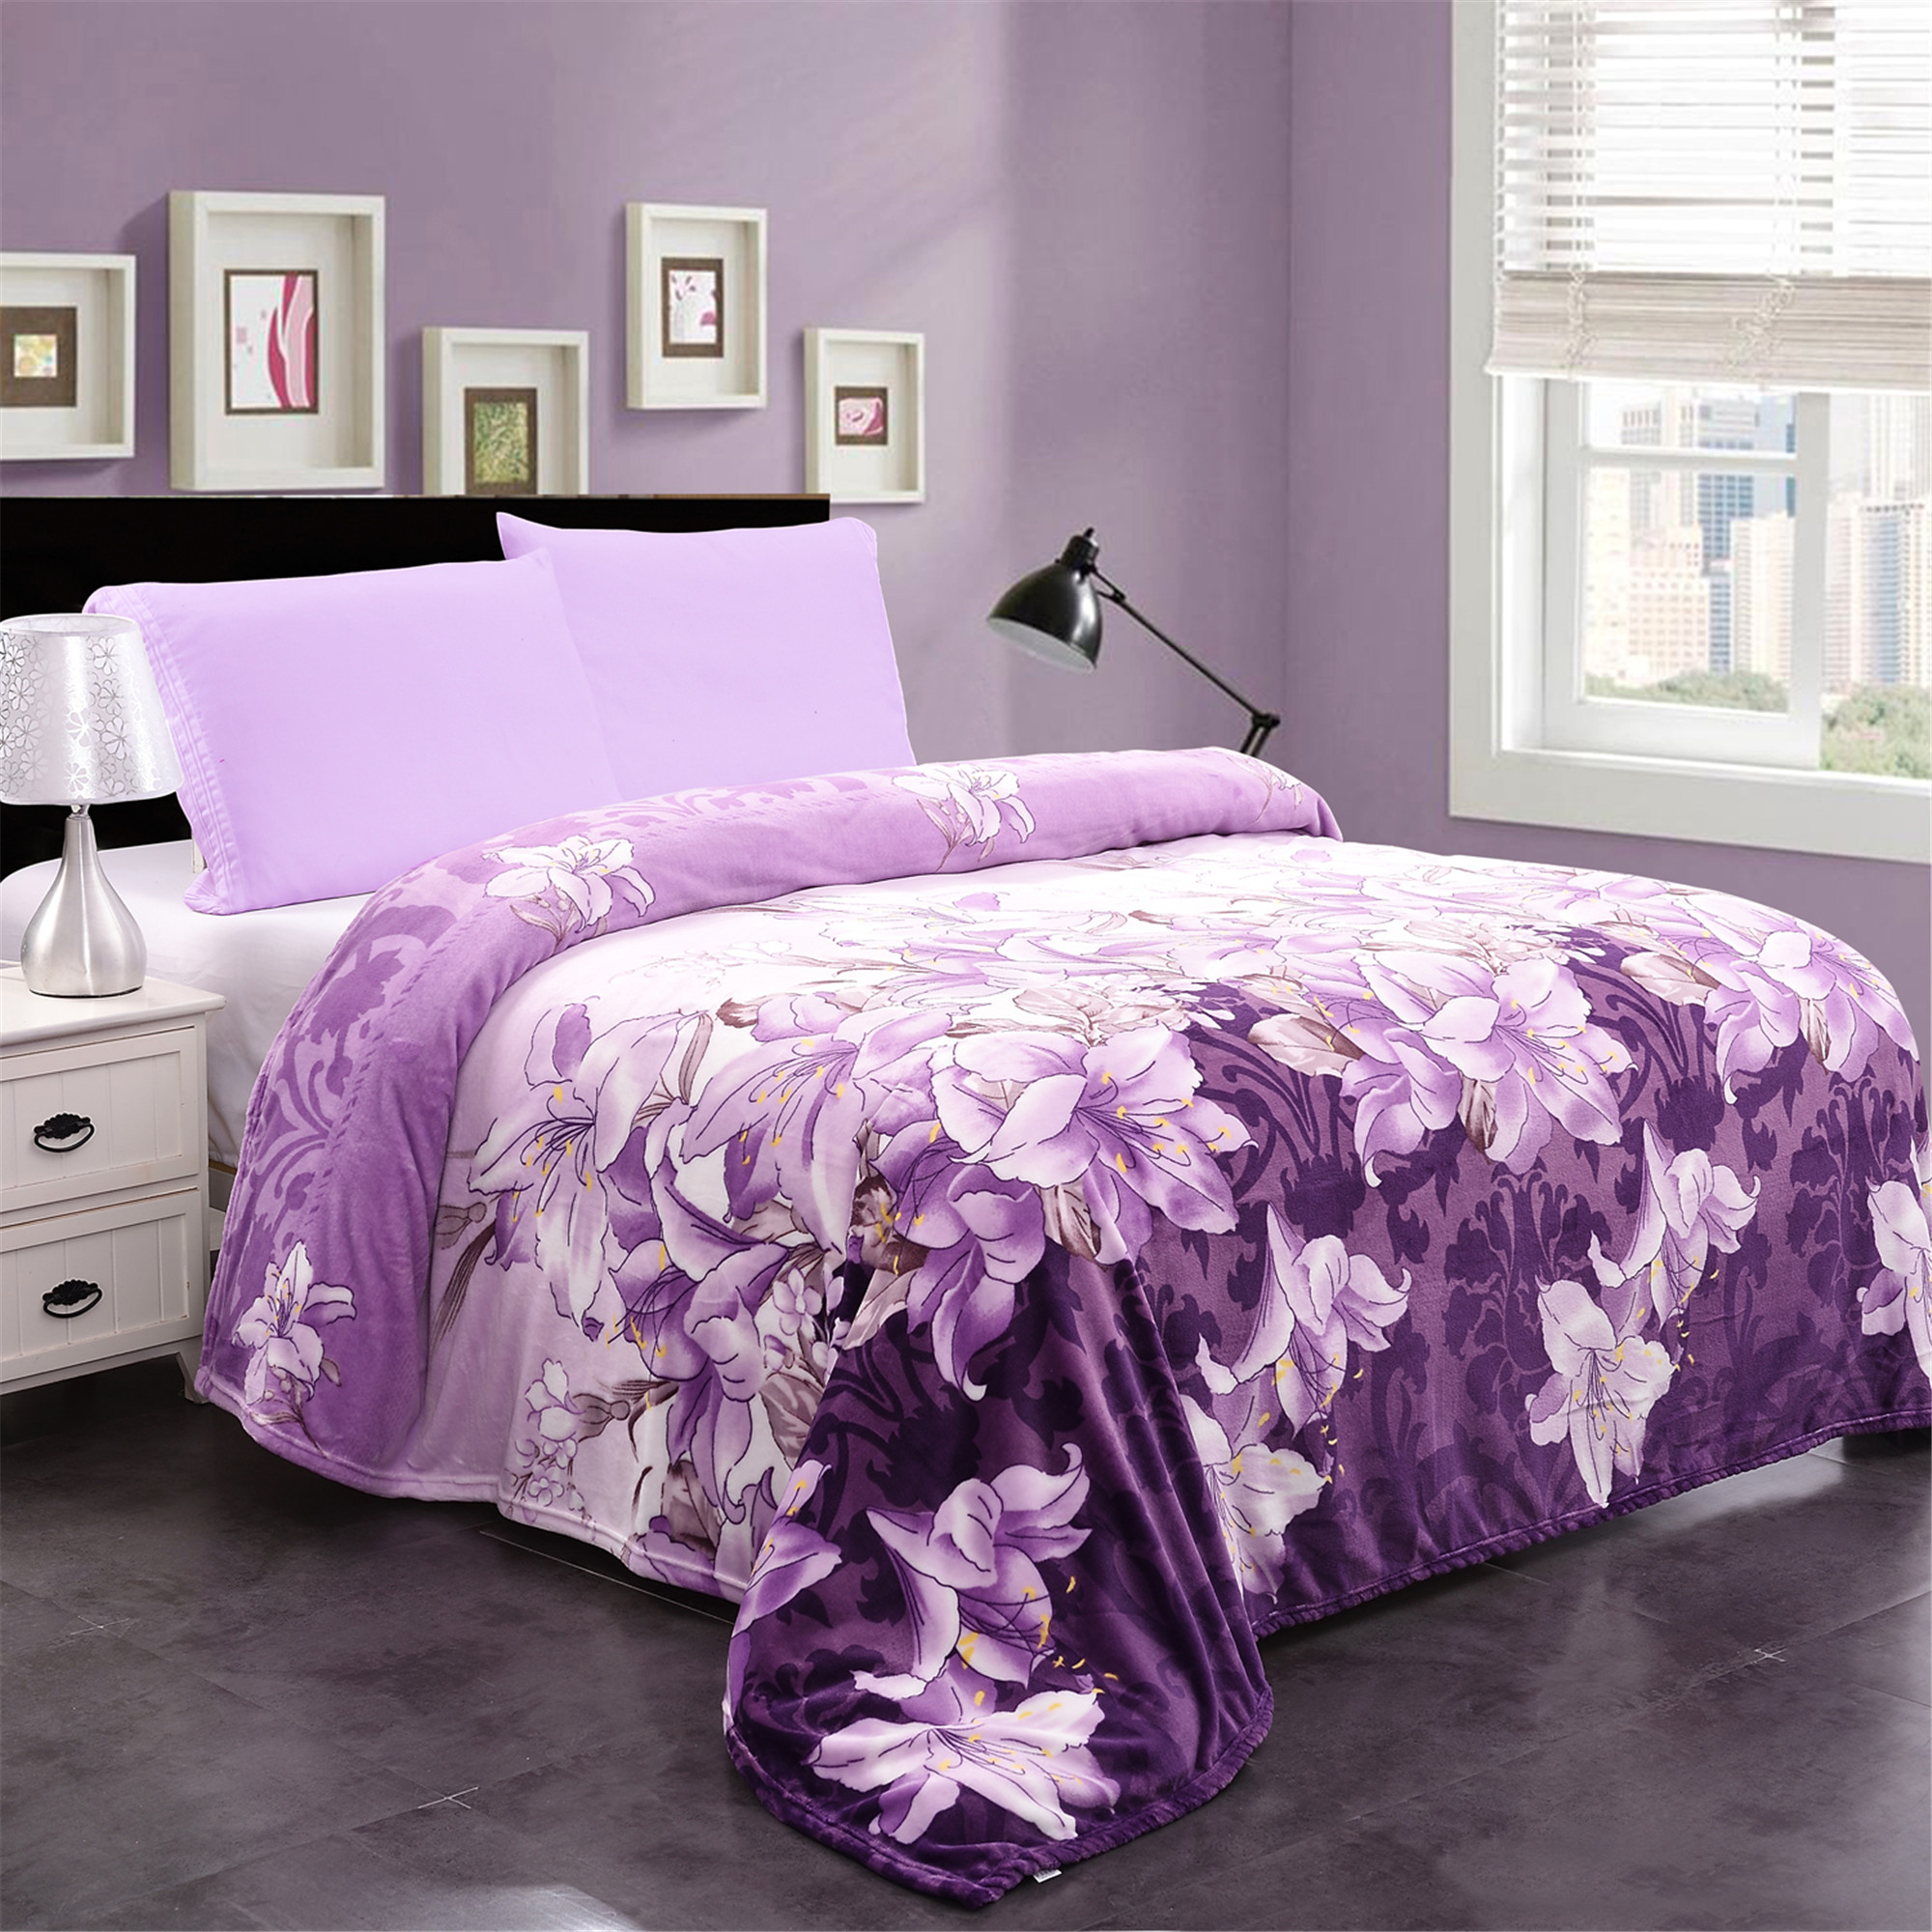 All Seasons Micro-Plush Flannel Fleece Blanket Lightweight Soft Warm Purple Floral Printed For King Bed